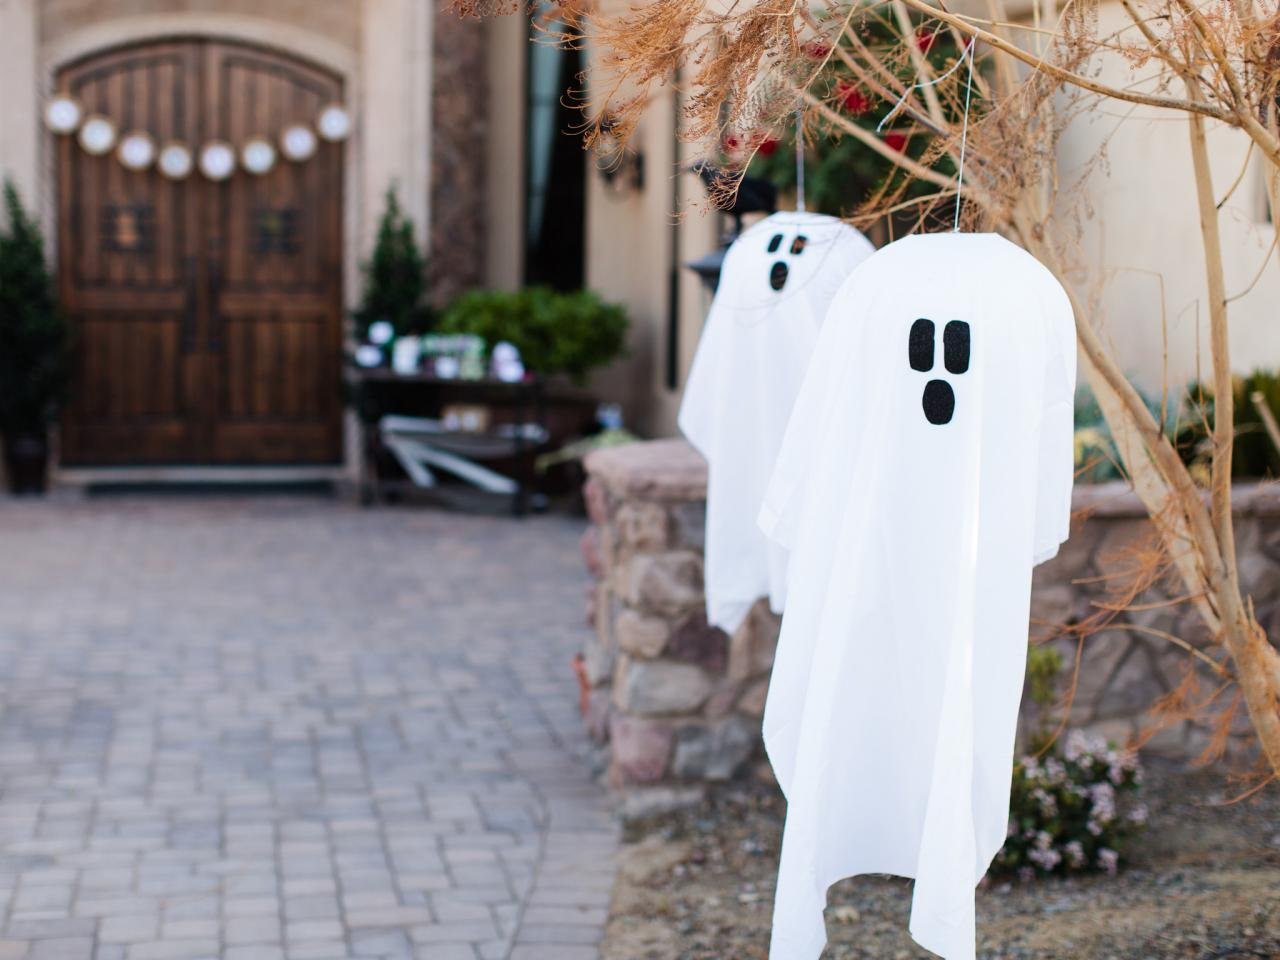 36 Cheap DIY Halloween decorations for 2019, scary Halloween home decorations, dollar store Halloween decorations, cheap Halloween decorations, Halloween home decorations. These ultimate DIY Halloween decorations will blow you away. The ultimate dollar store DIY Halloween decorations that are super scary and cheap. #halloween #diy #scary #spooky #halloweendecorations #homedecor #halloweendiy #halloweenideas #2019 #2019halloween